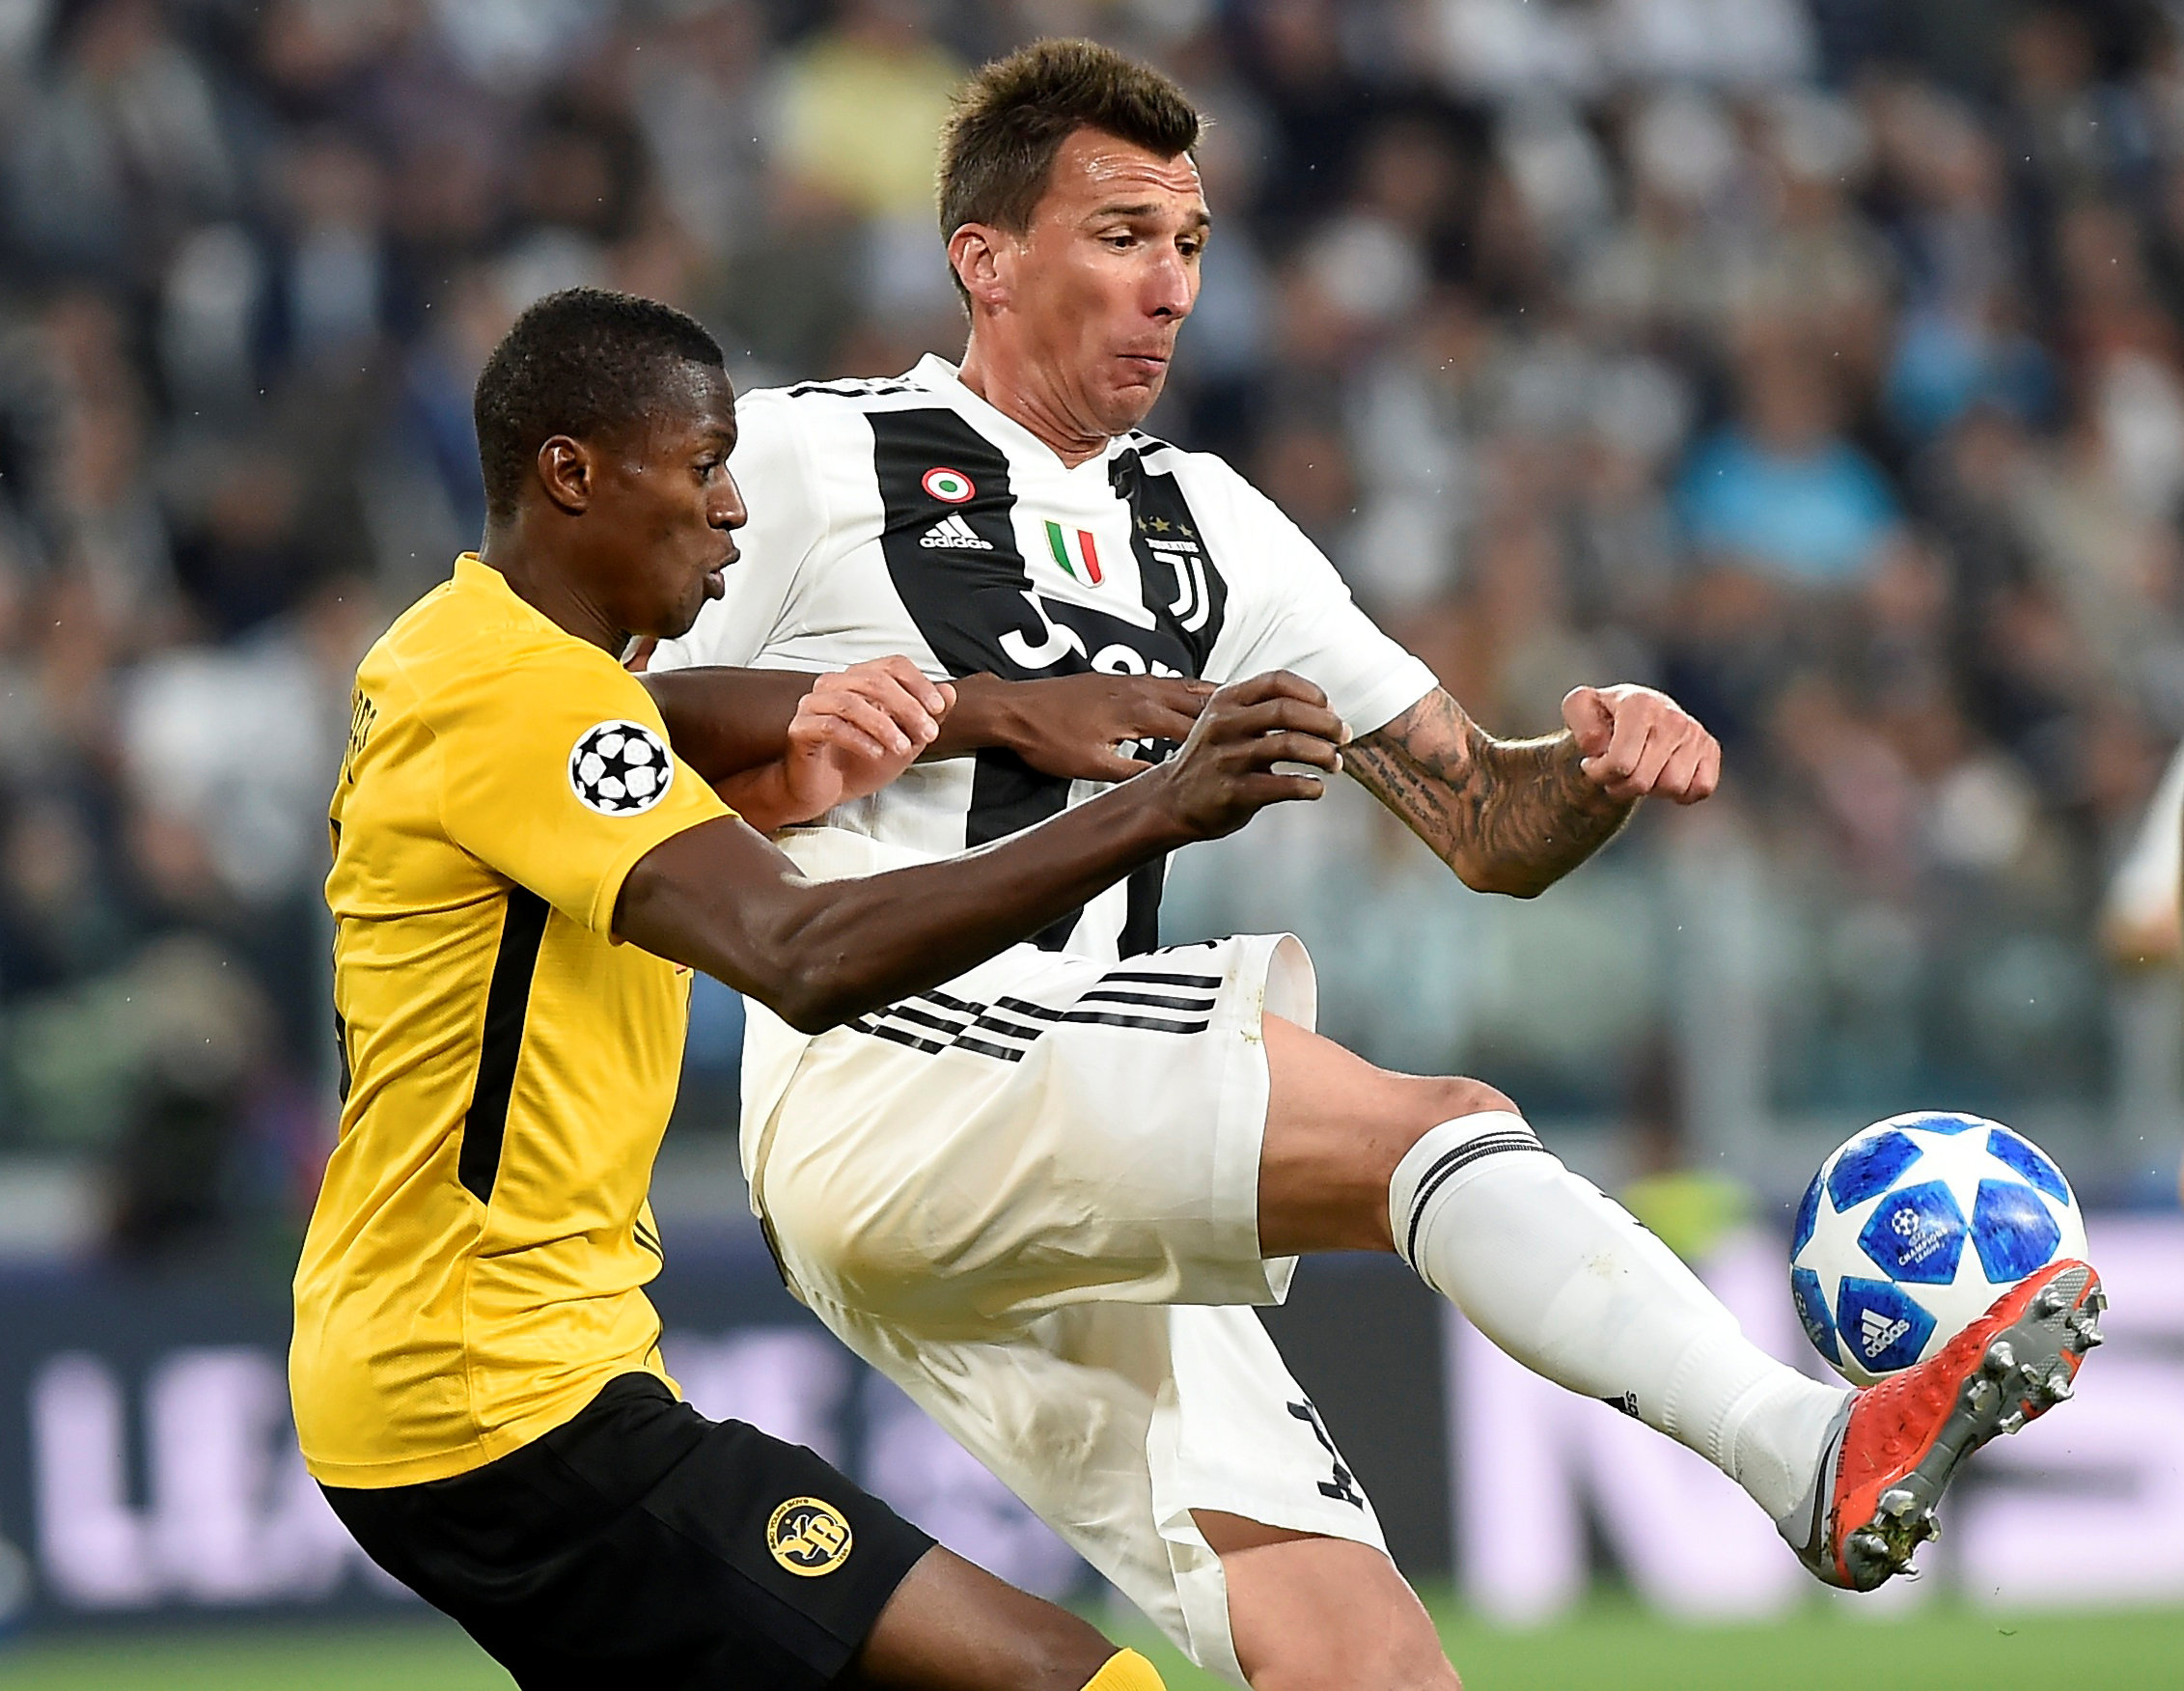 Soccer Football - Champions League - Group Stage - Group H - Juventus v BSC Young Boys - Allianz Stadium, Turin, Italy - October 2, 2018  Juventus' Mario Mandzukic in action with Young Boys' Sekou Sanogo   REUTERS/Massimo Pinca